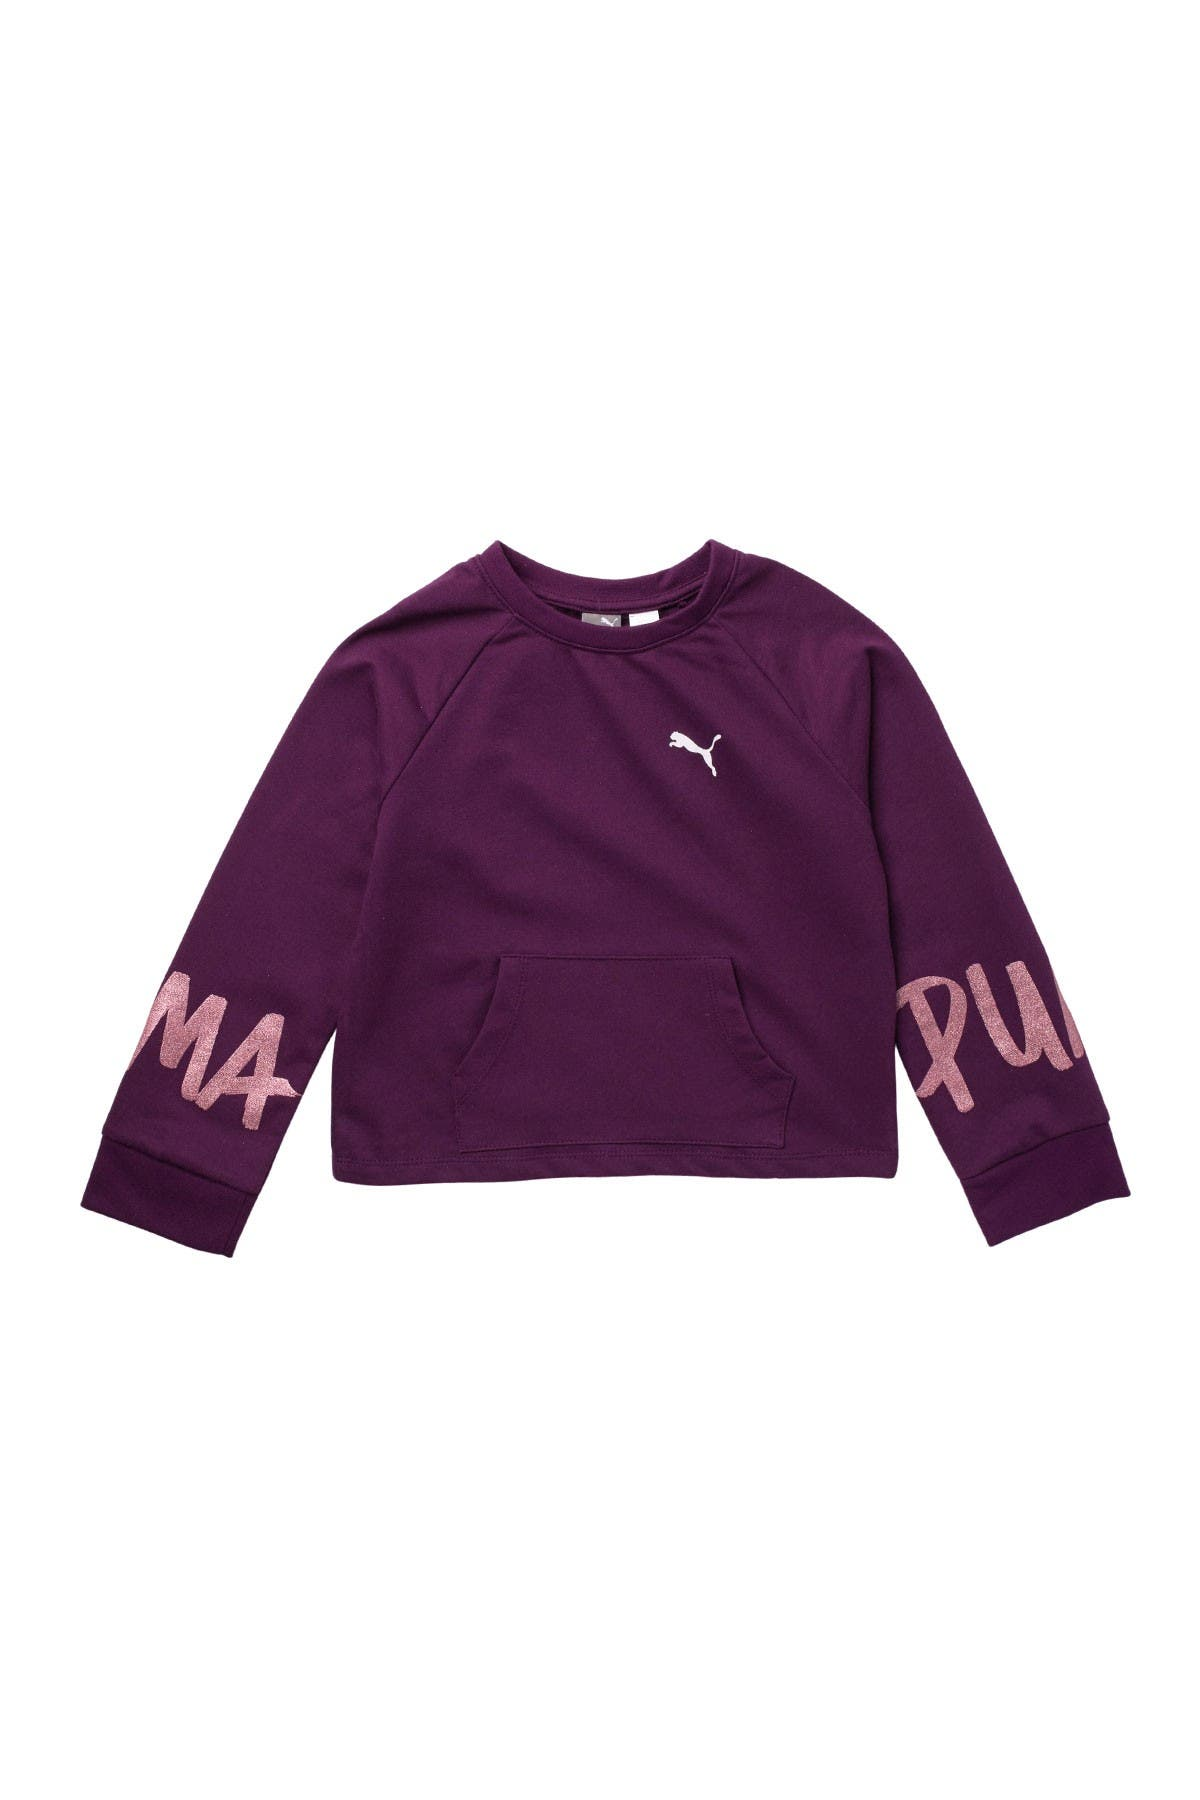 Image of PUMA Tag Pack French Terry Pullover